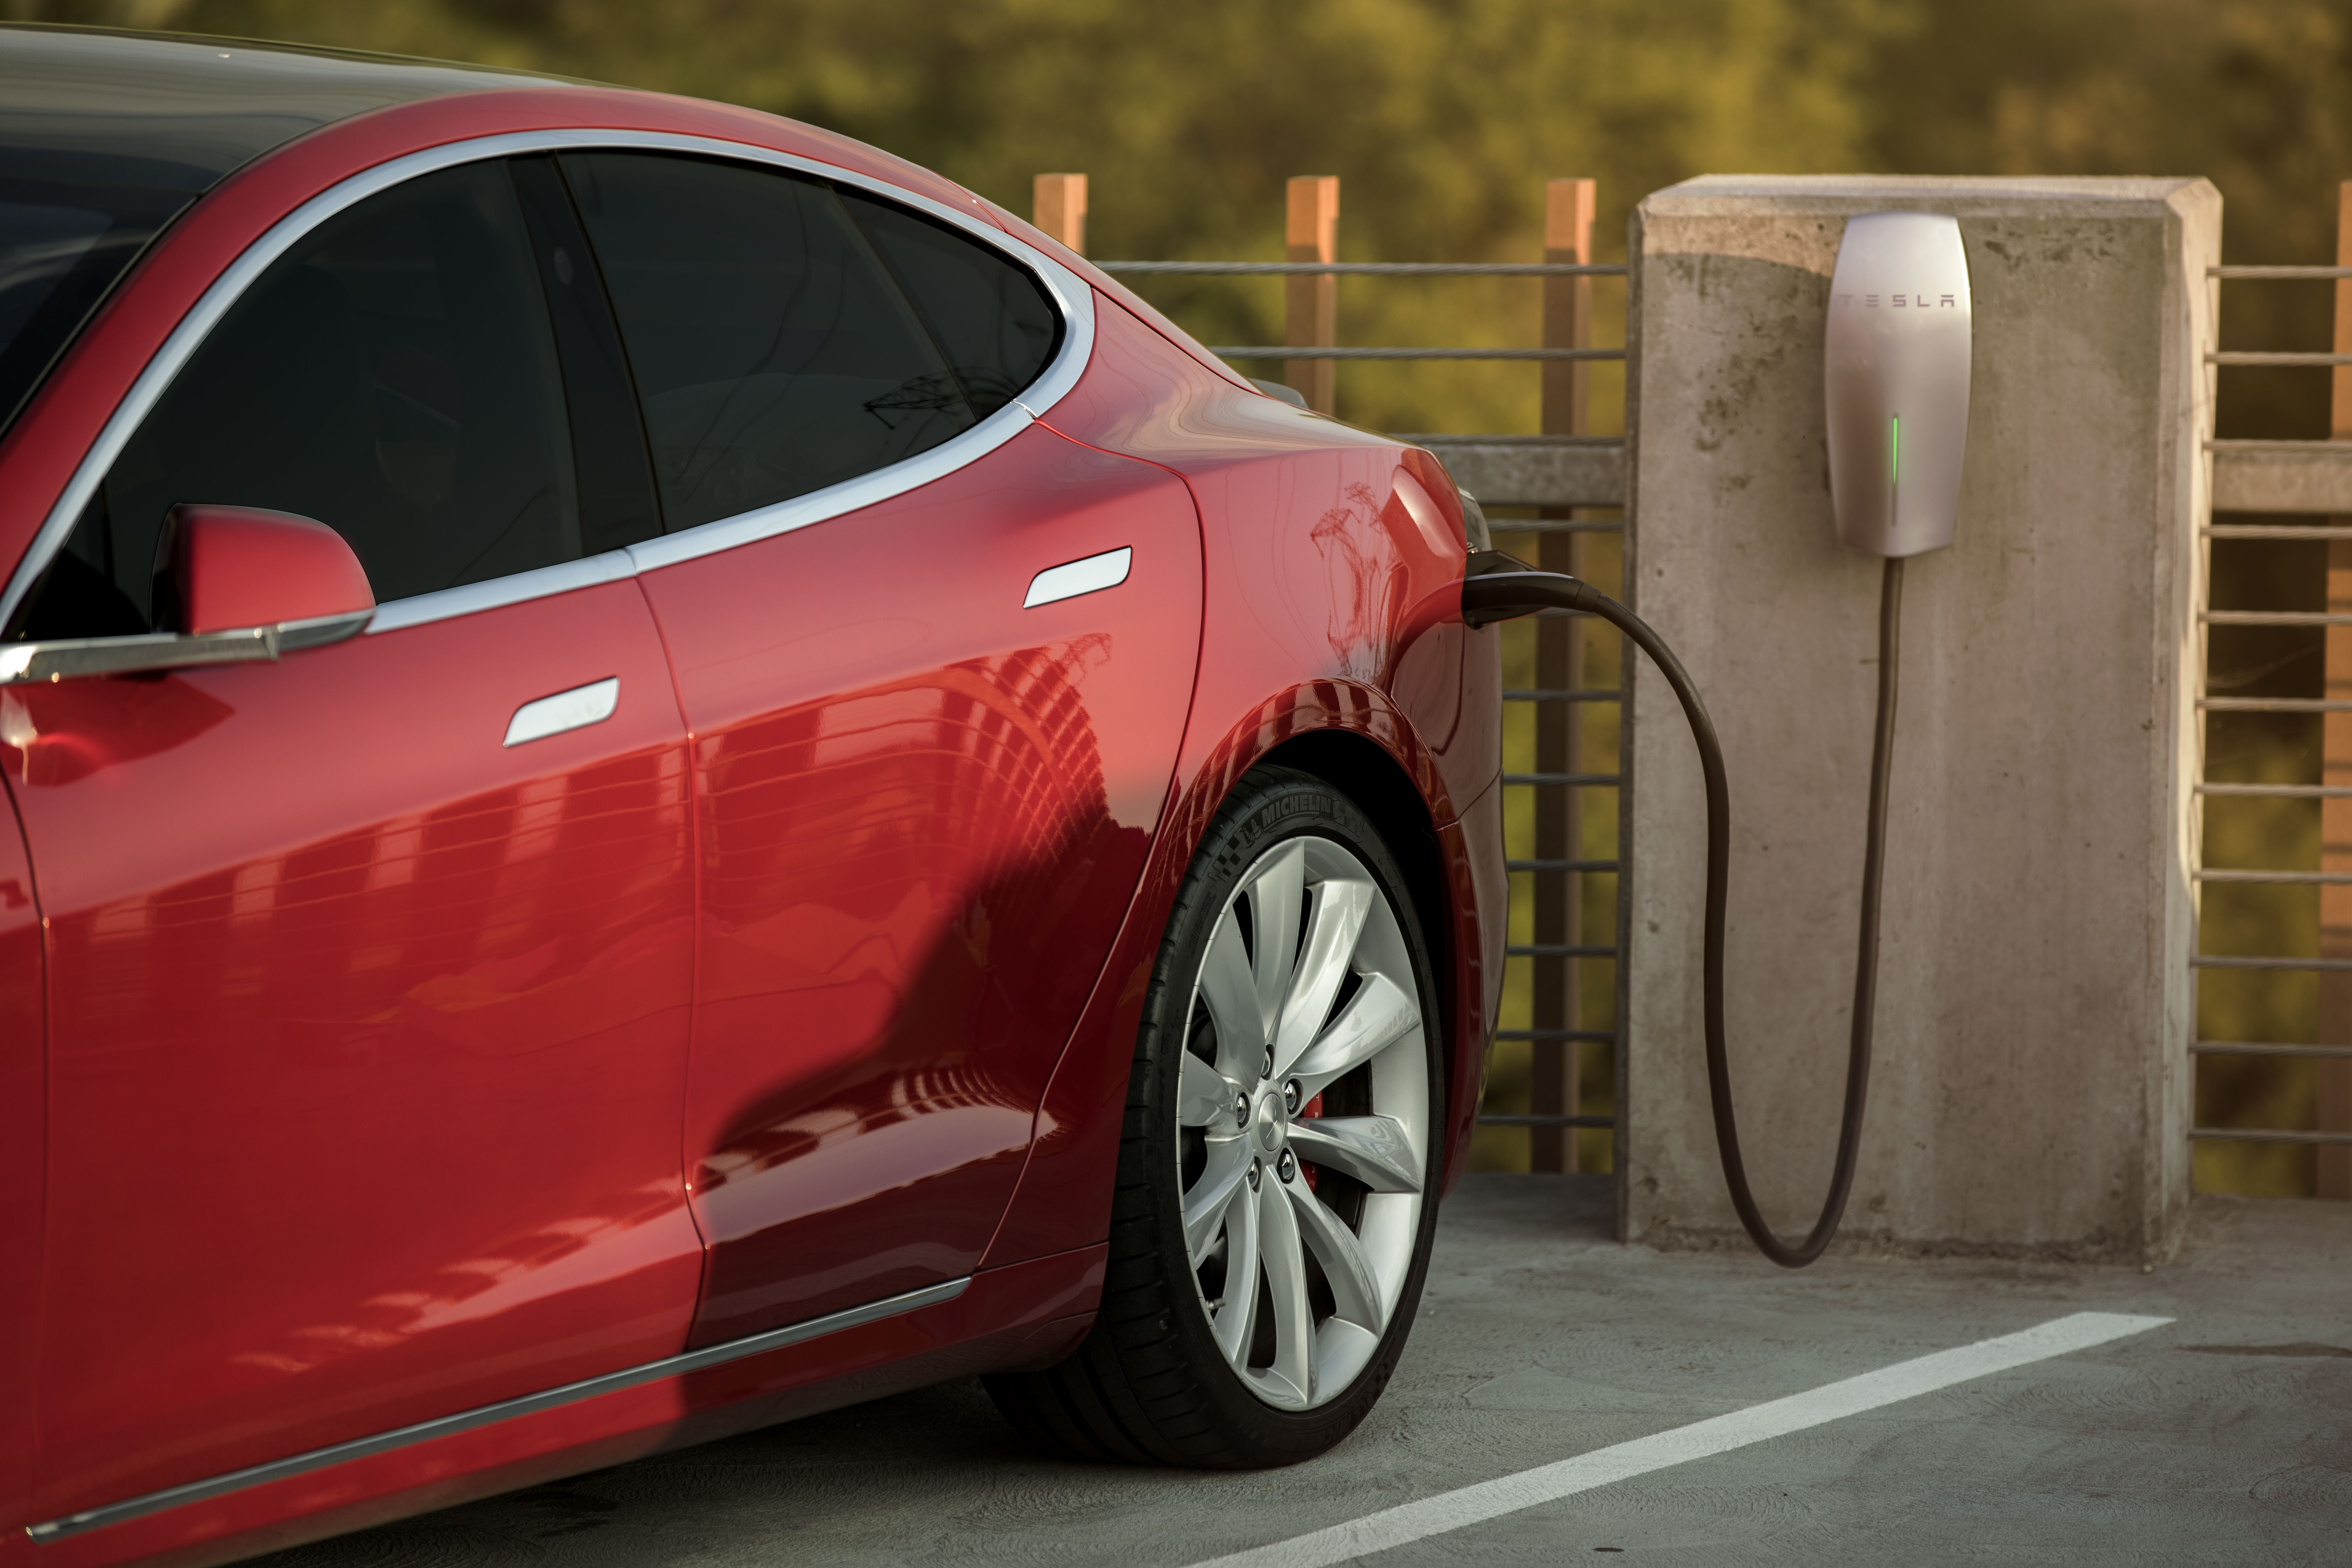 OPINION: Let Tesla Grow in New York